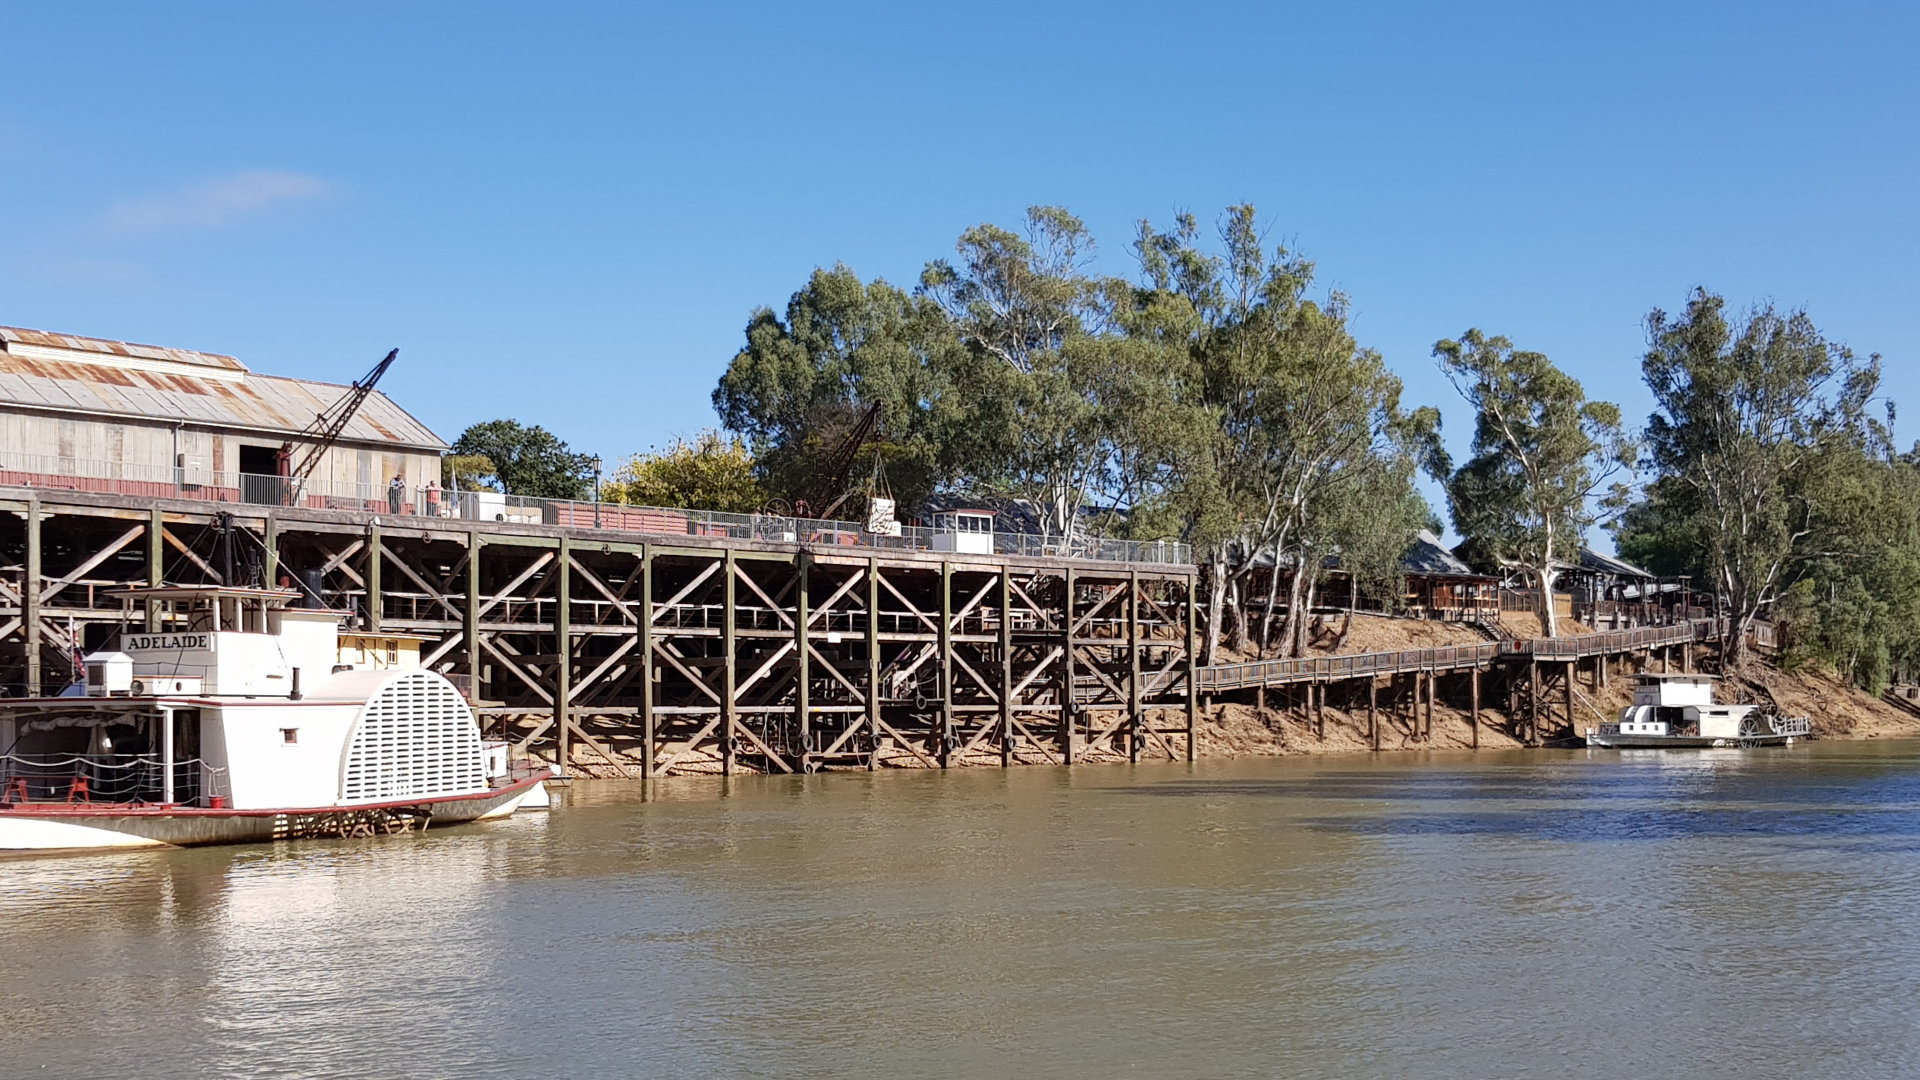 Wharf at The Historical Port on the Murray River in Echuca with PS Adelaide in front. The wharf was built in 1865 to support sawmills in the area. The wharf is three stories high, and in its heyday over a quarter of a mile long. Visit the discovery centre, guided tours, and paddle steamer cruise